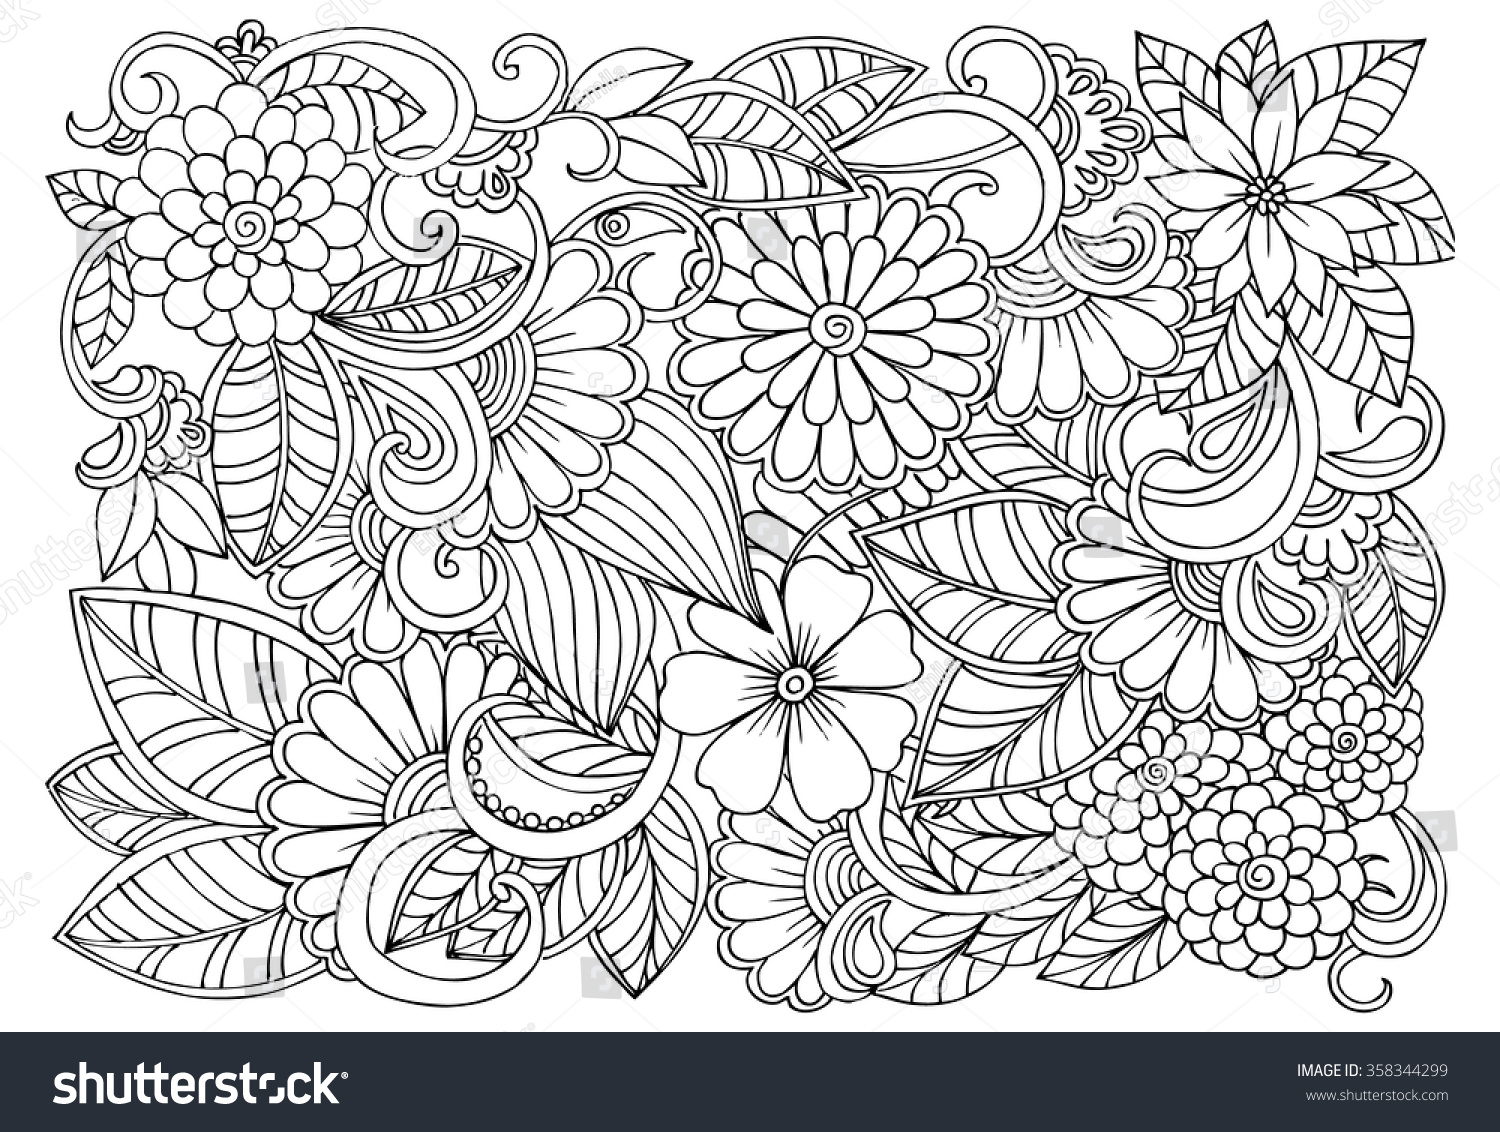 Coloring pages for relaxation - Doodle Floral Pattern In Black And White Page For Coloring Book Very Interesting And